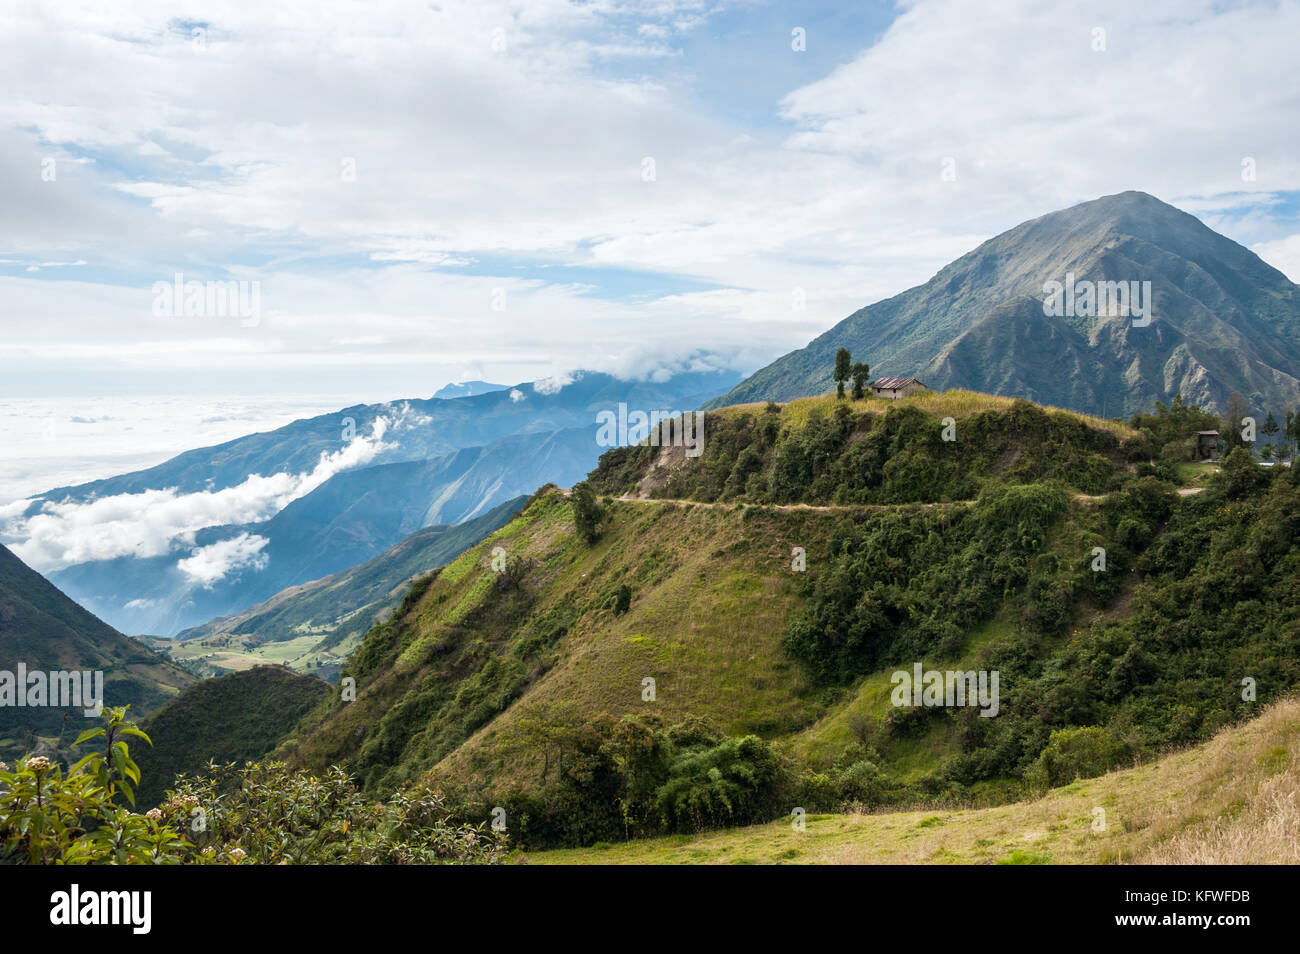 On the road through the Andes. The photo is taken near small town Alausi in Ecuador - Stock Image